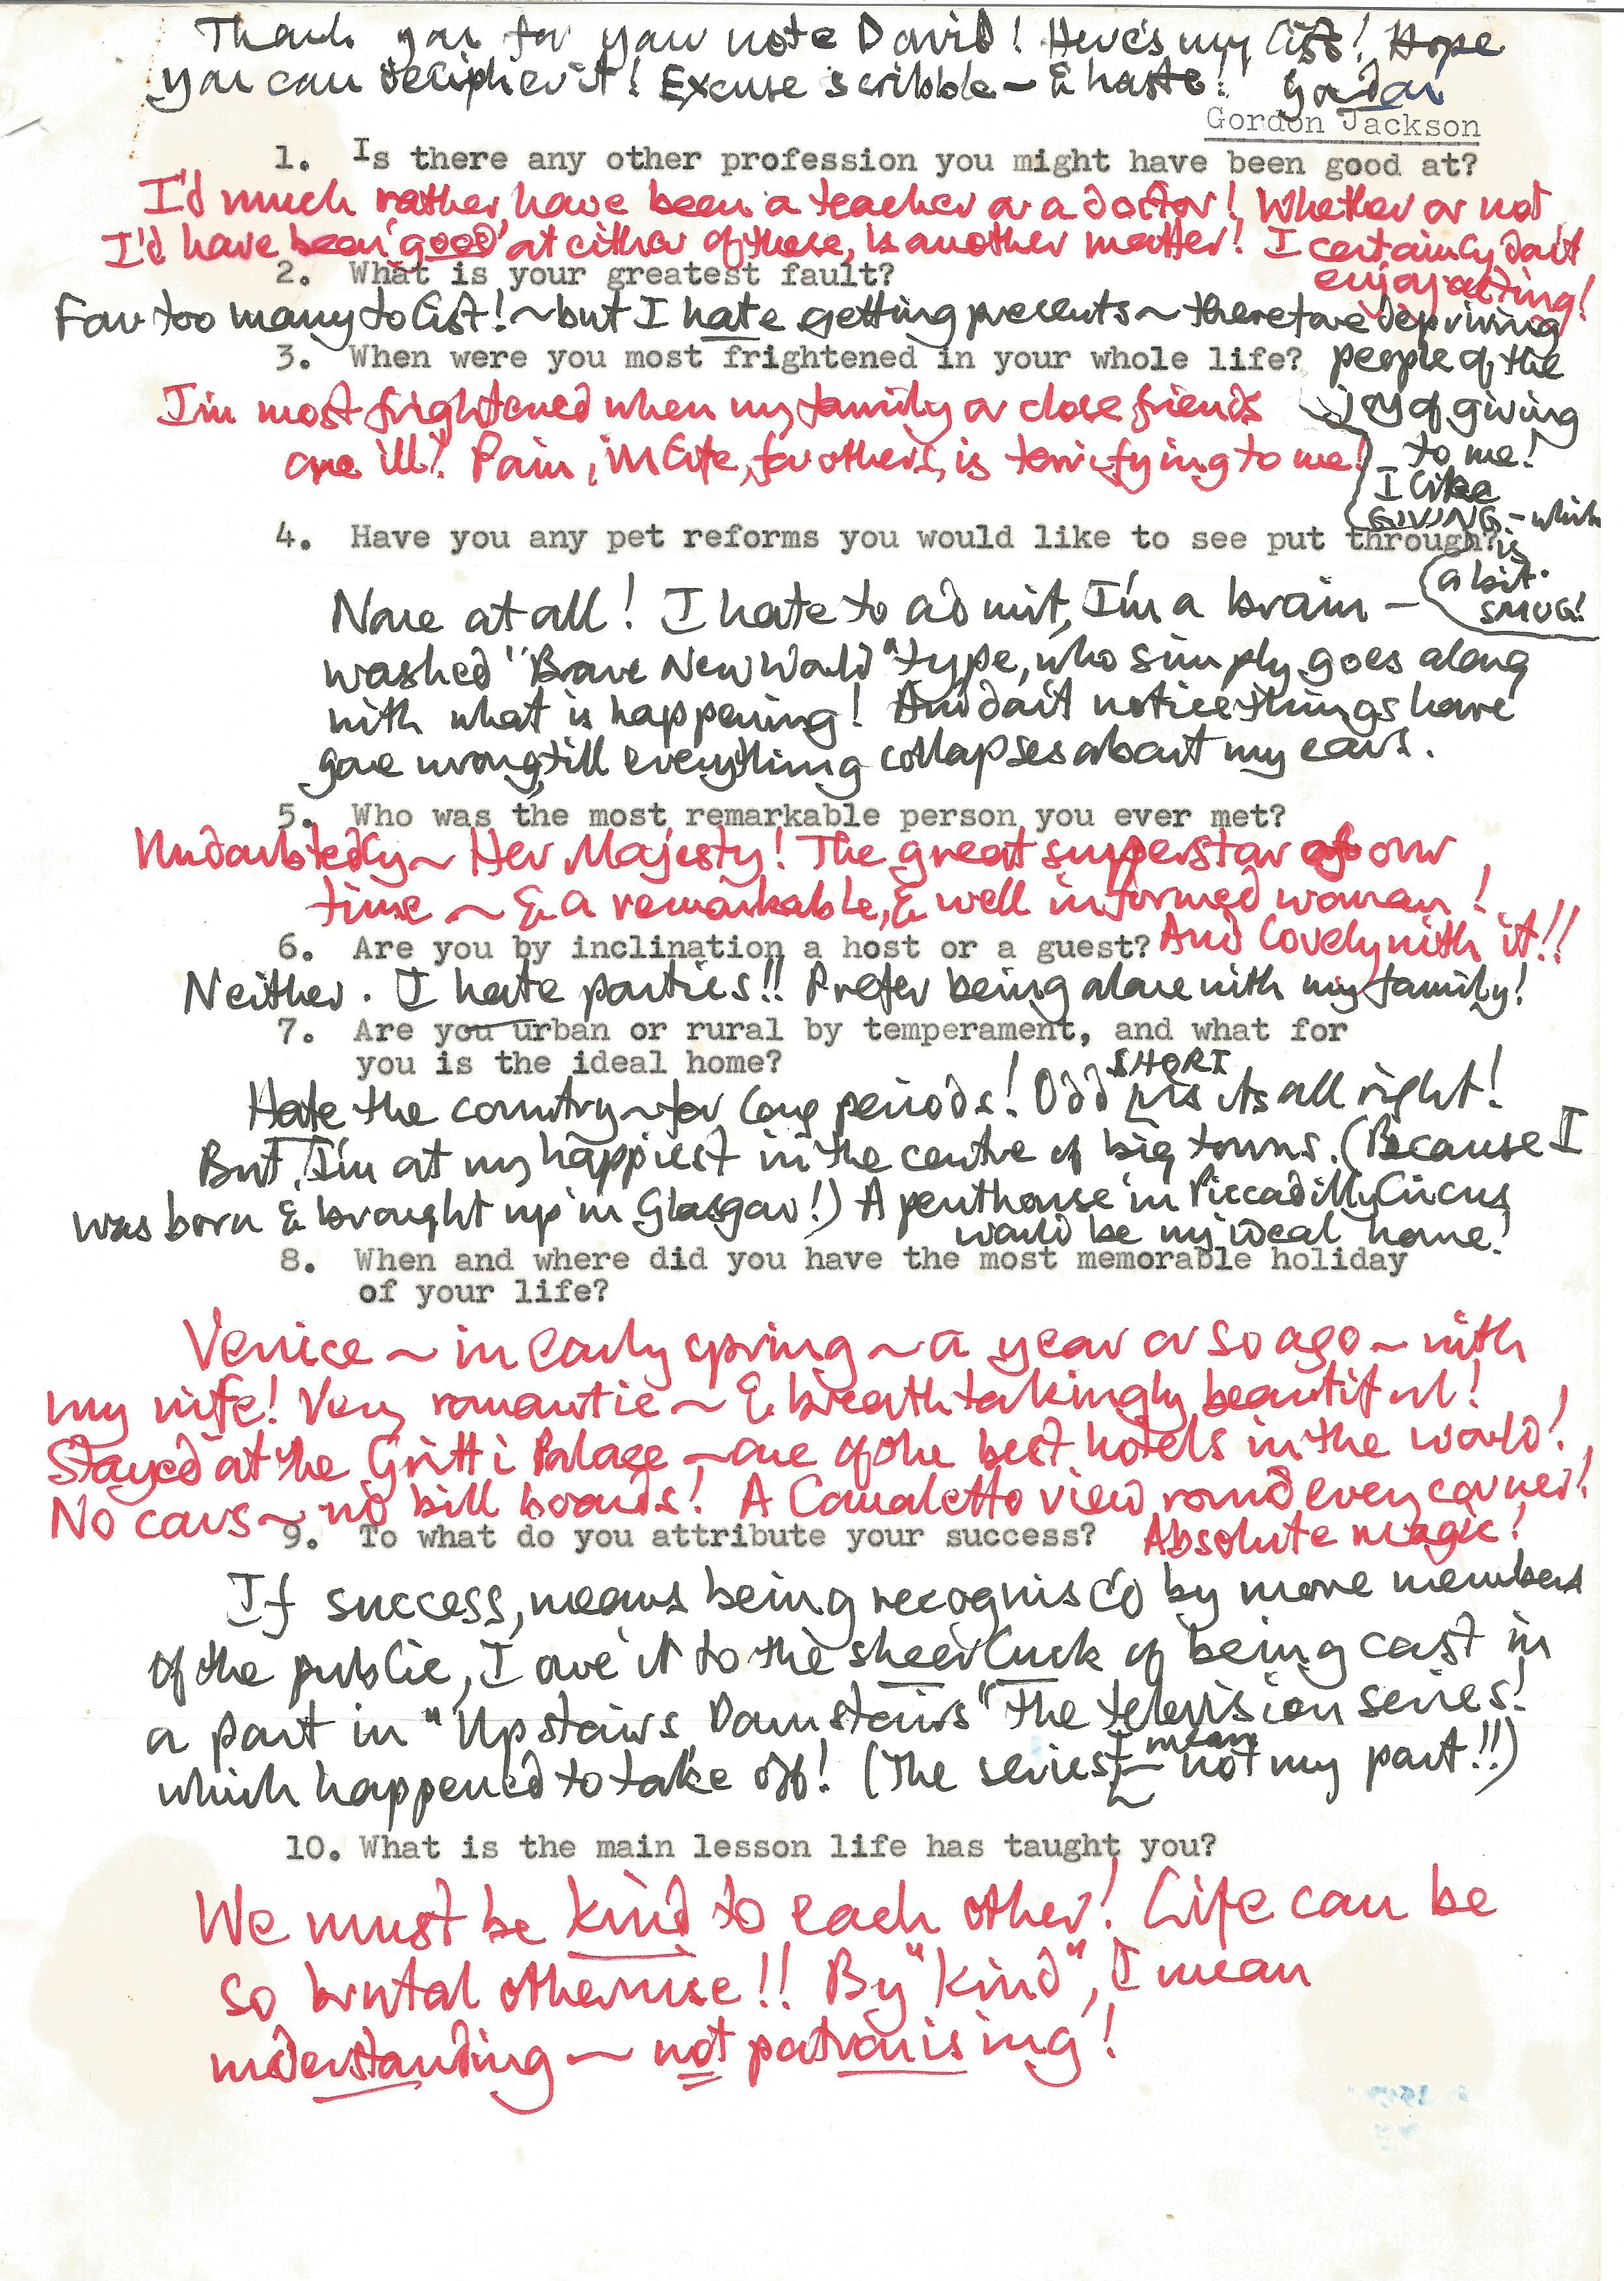 Actor Gordon Jackson, interesting and detailed handwritten replies on a questionnaire from a fan